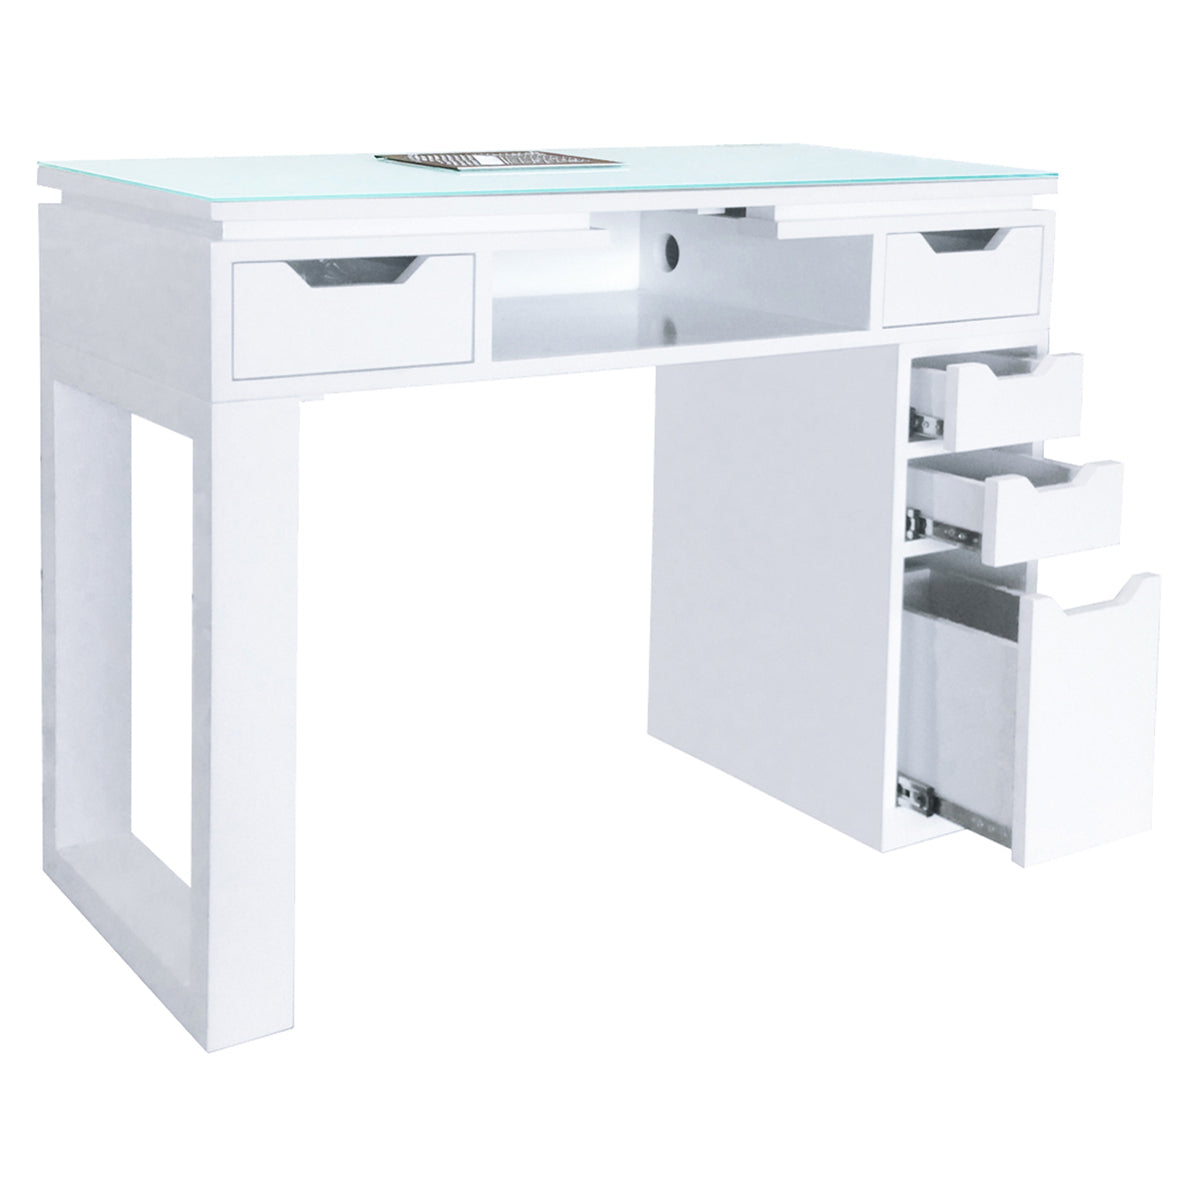 Valentino LUX Manicure Nail Table - White - Drawers Open